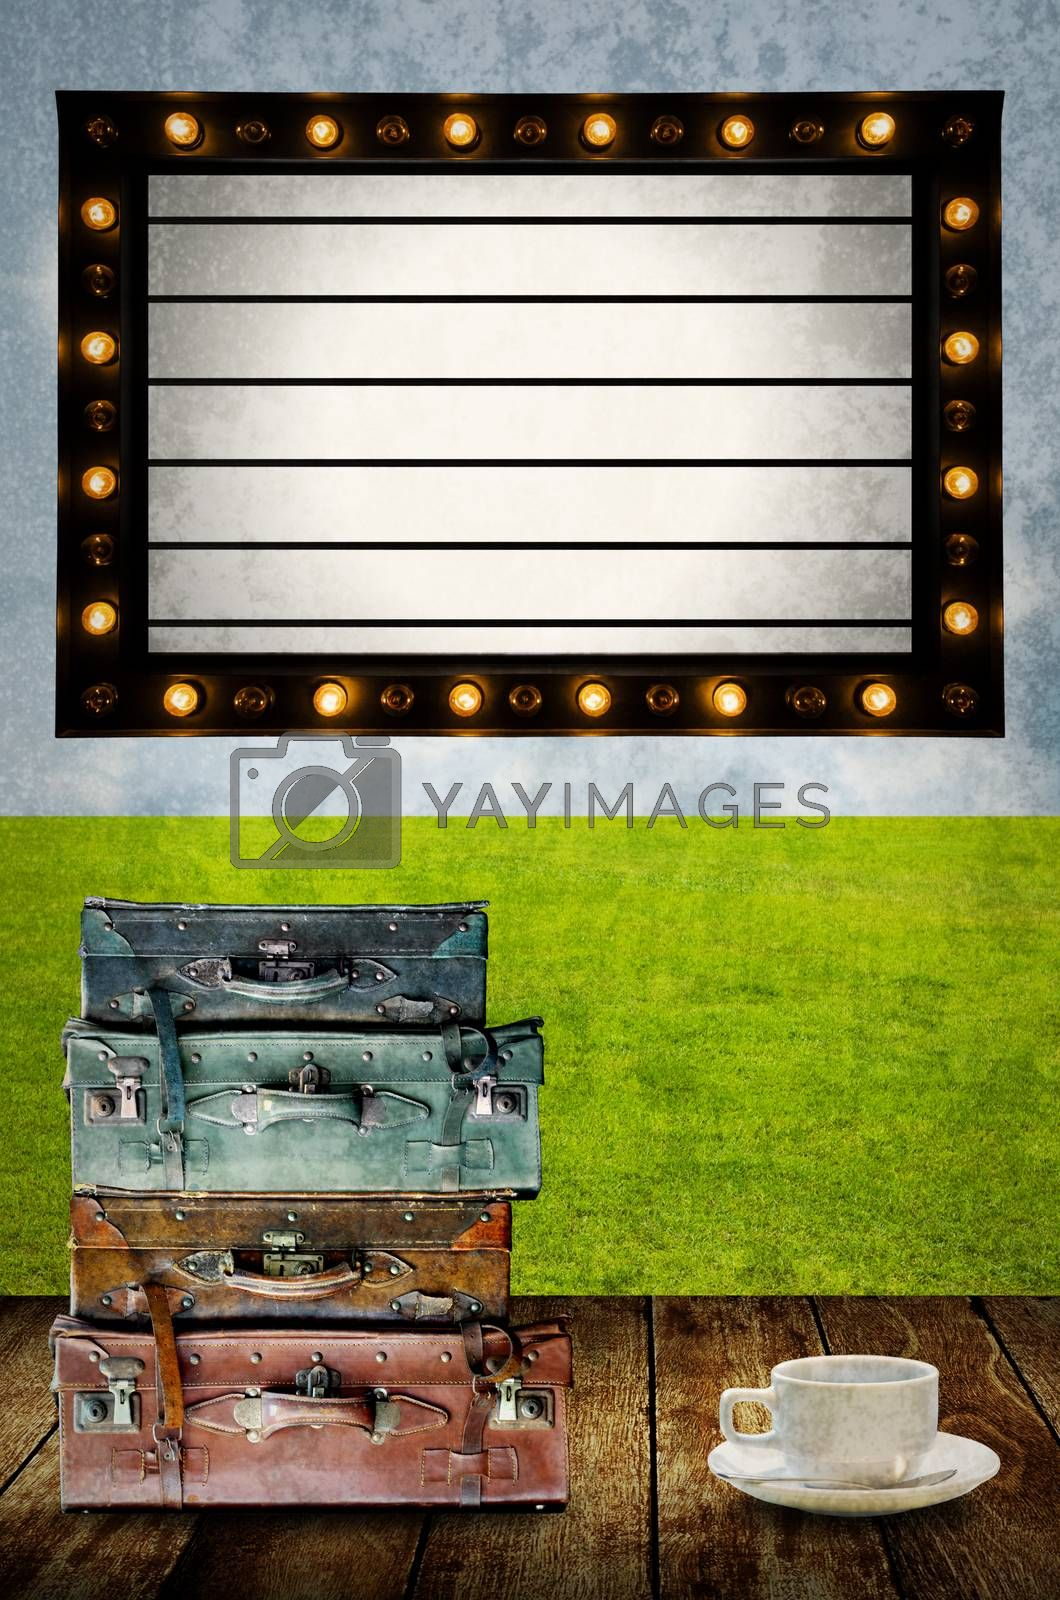 Vintage Light box program board with travel bag and coffee at green meadow garden